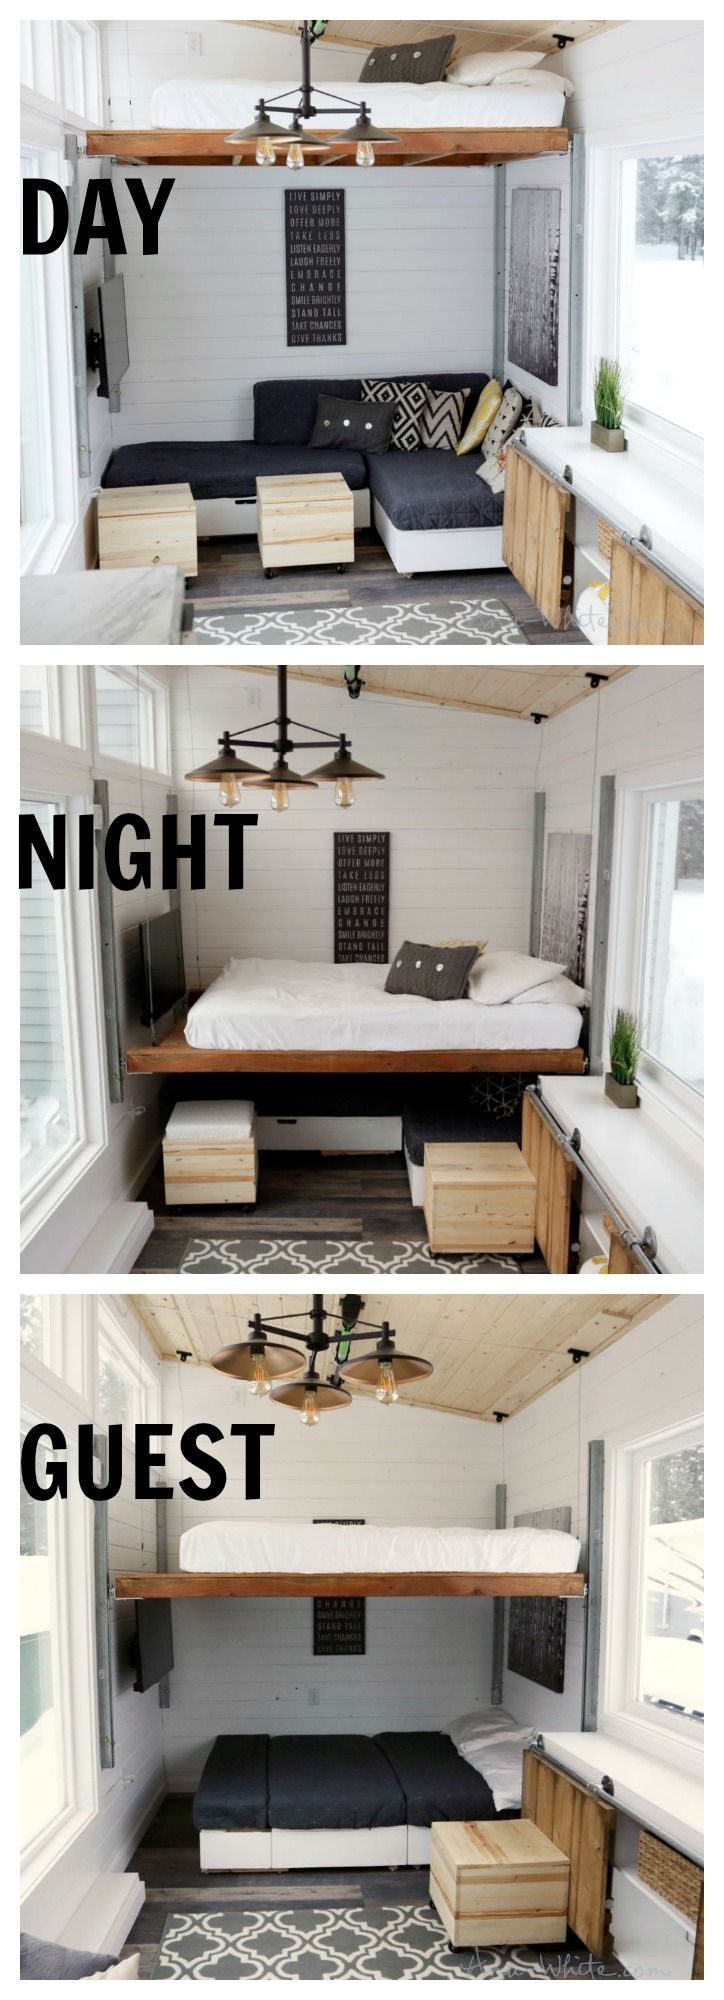 Best Ideas About Small House Interior Design On Pinterest - Interiors of tiny houses